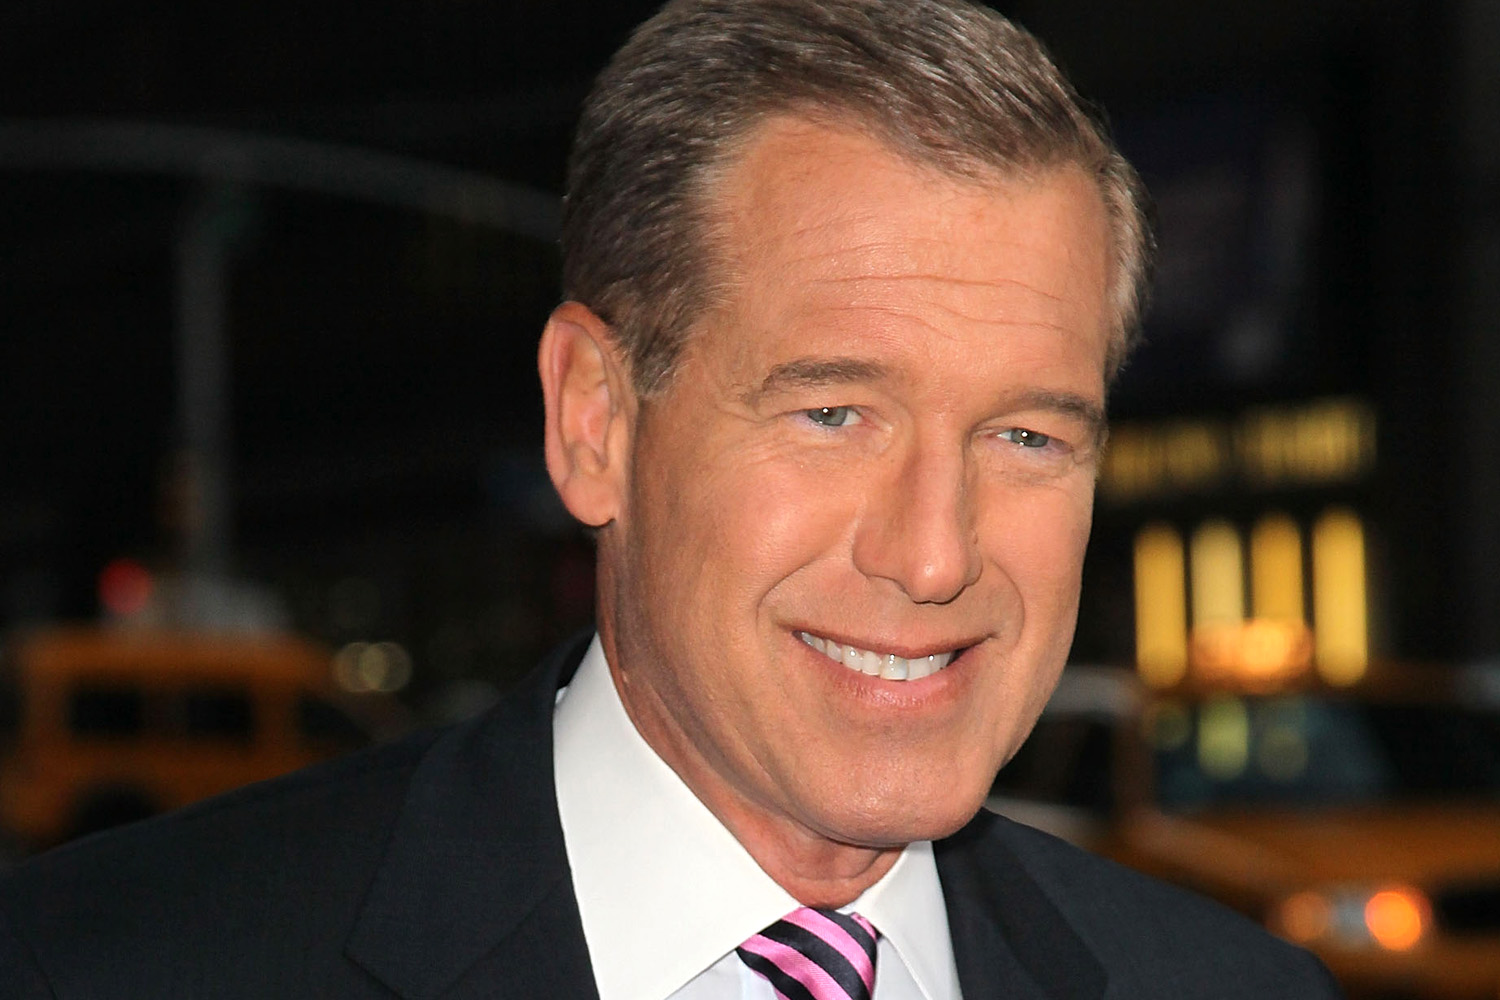 NBC Announces No Further Action on Brian Williams